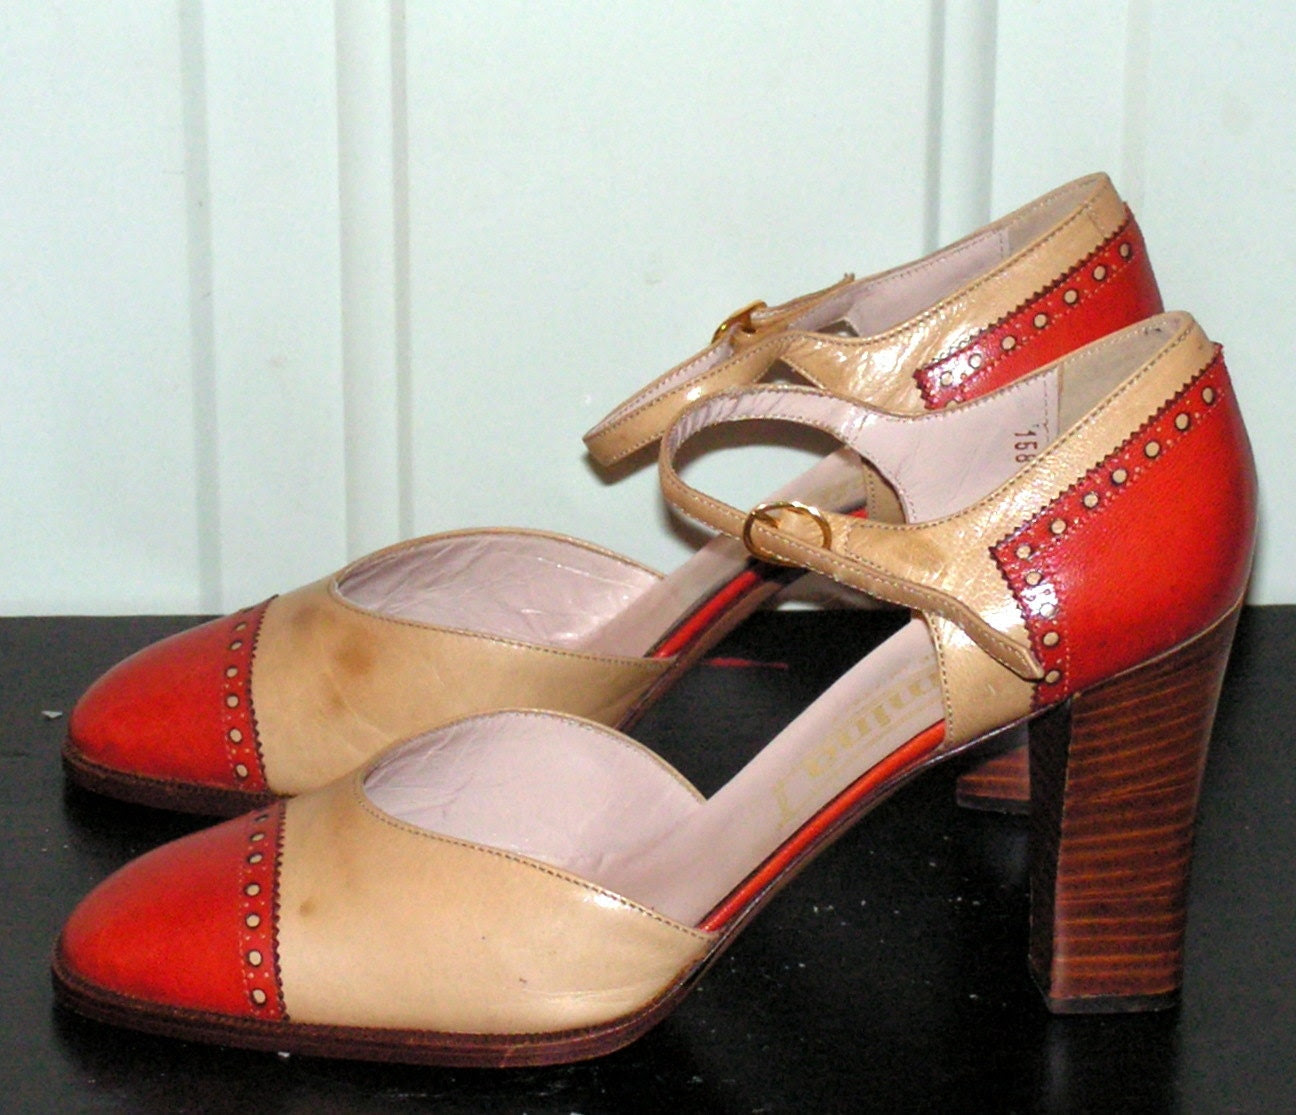 Vintage Two Tone Pumps Shoes in Orange Ivory Wooden STack Heels Size 8 1/2 8.5 9 - retrosideshow